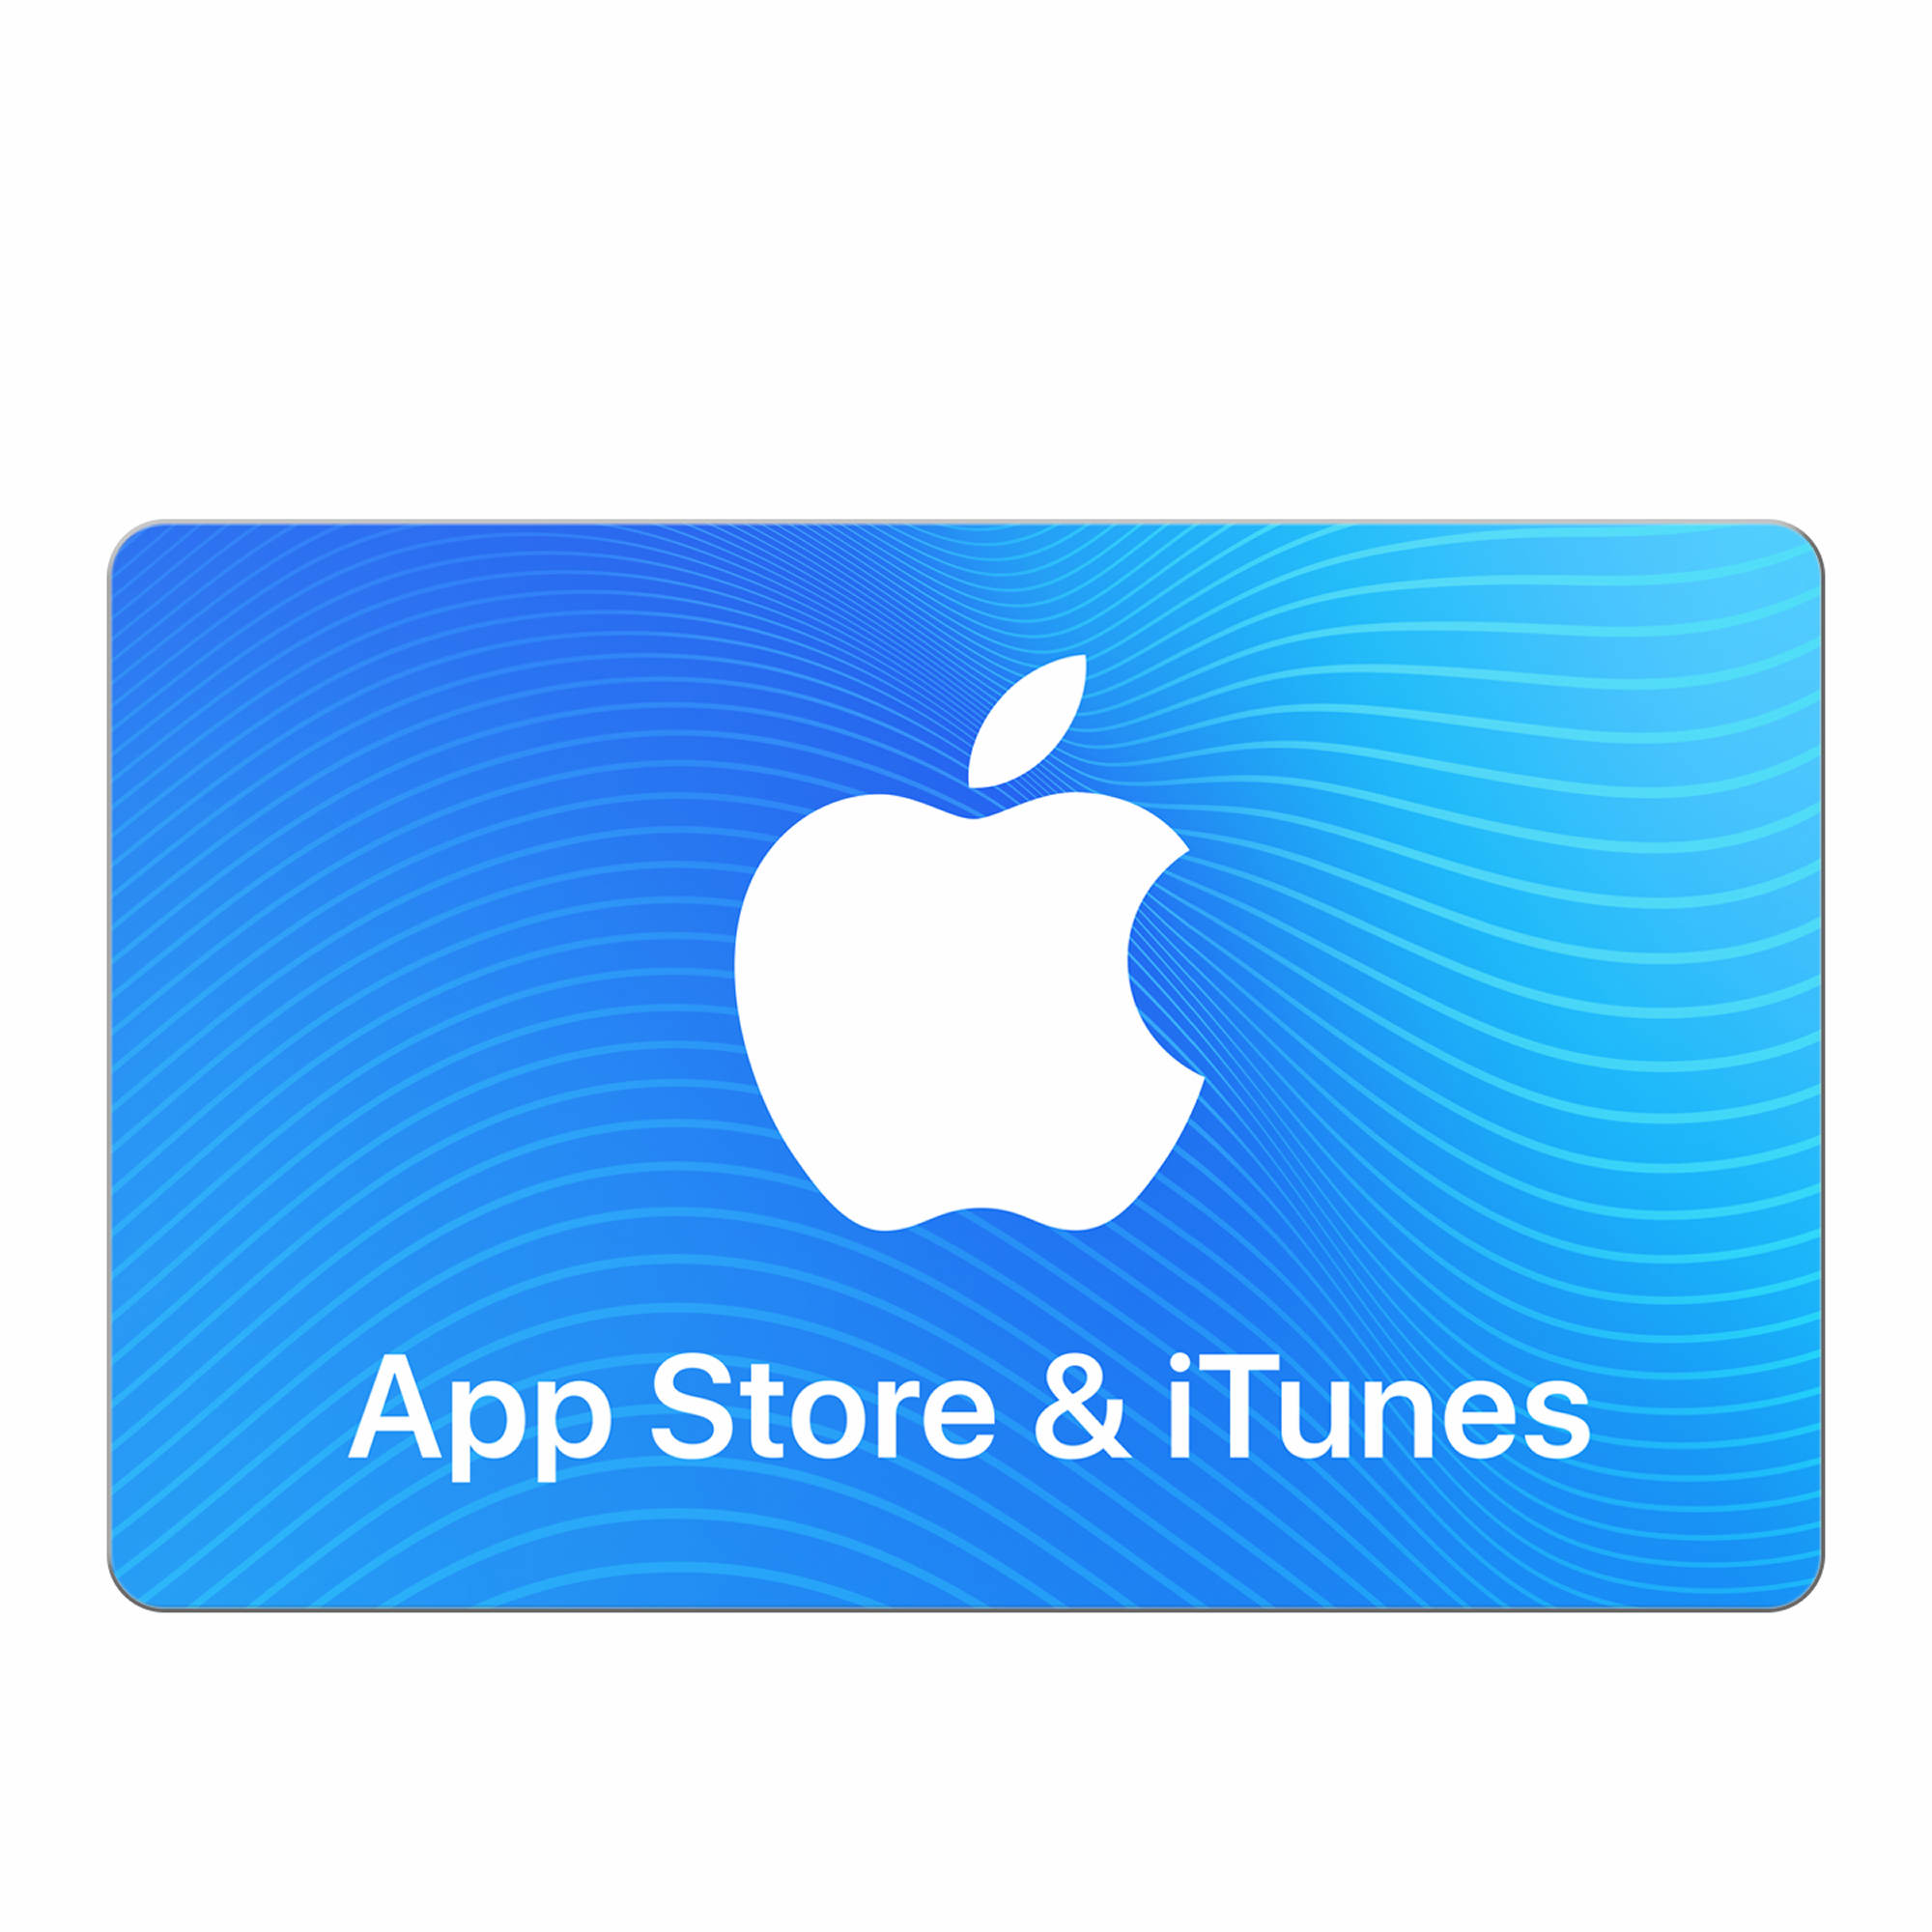 Welcome to iTunesVouchers The fastest, cheapest way to buy iTunes Vouchers or iTunes Gift Cards in South Africa! We keep stock of iTunes Vouchers/iTunes Gift Cards and pride ourselves in delivering your order in an efficient and friendly manner!